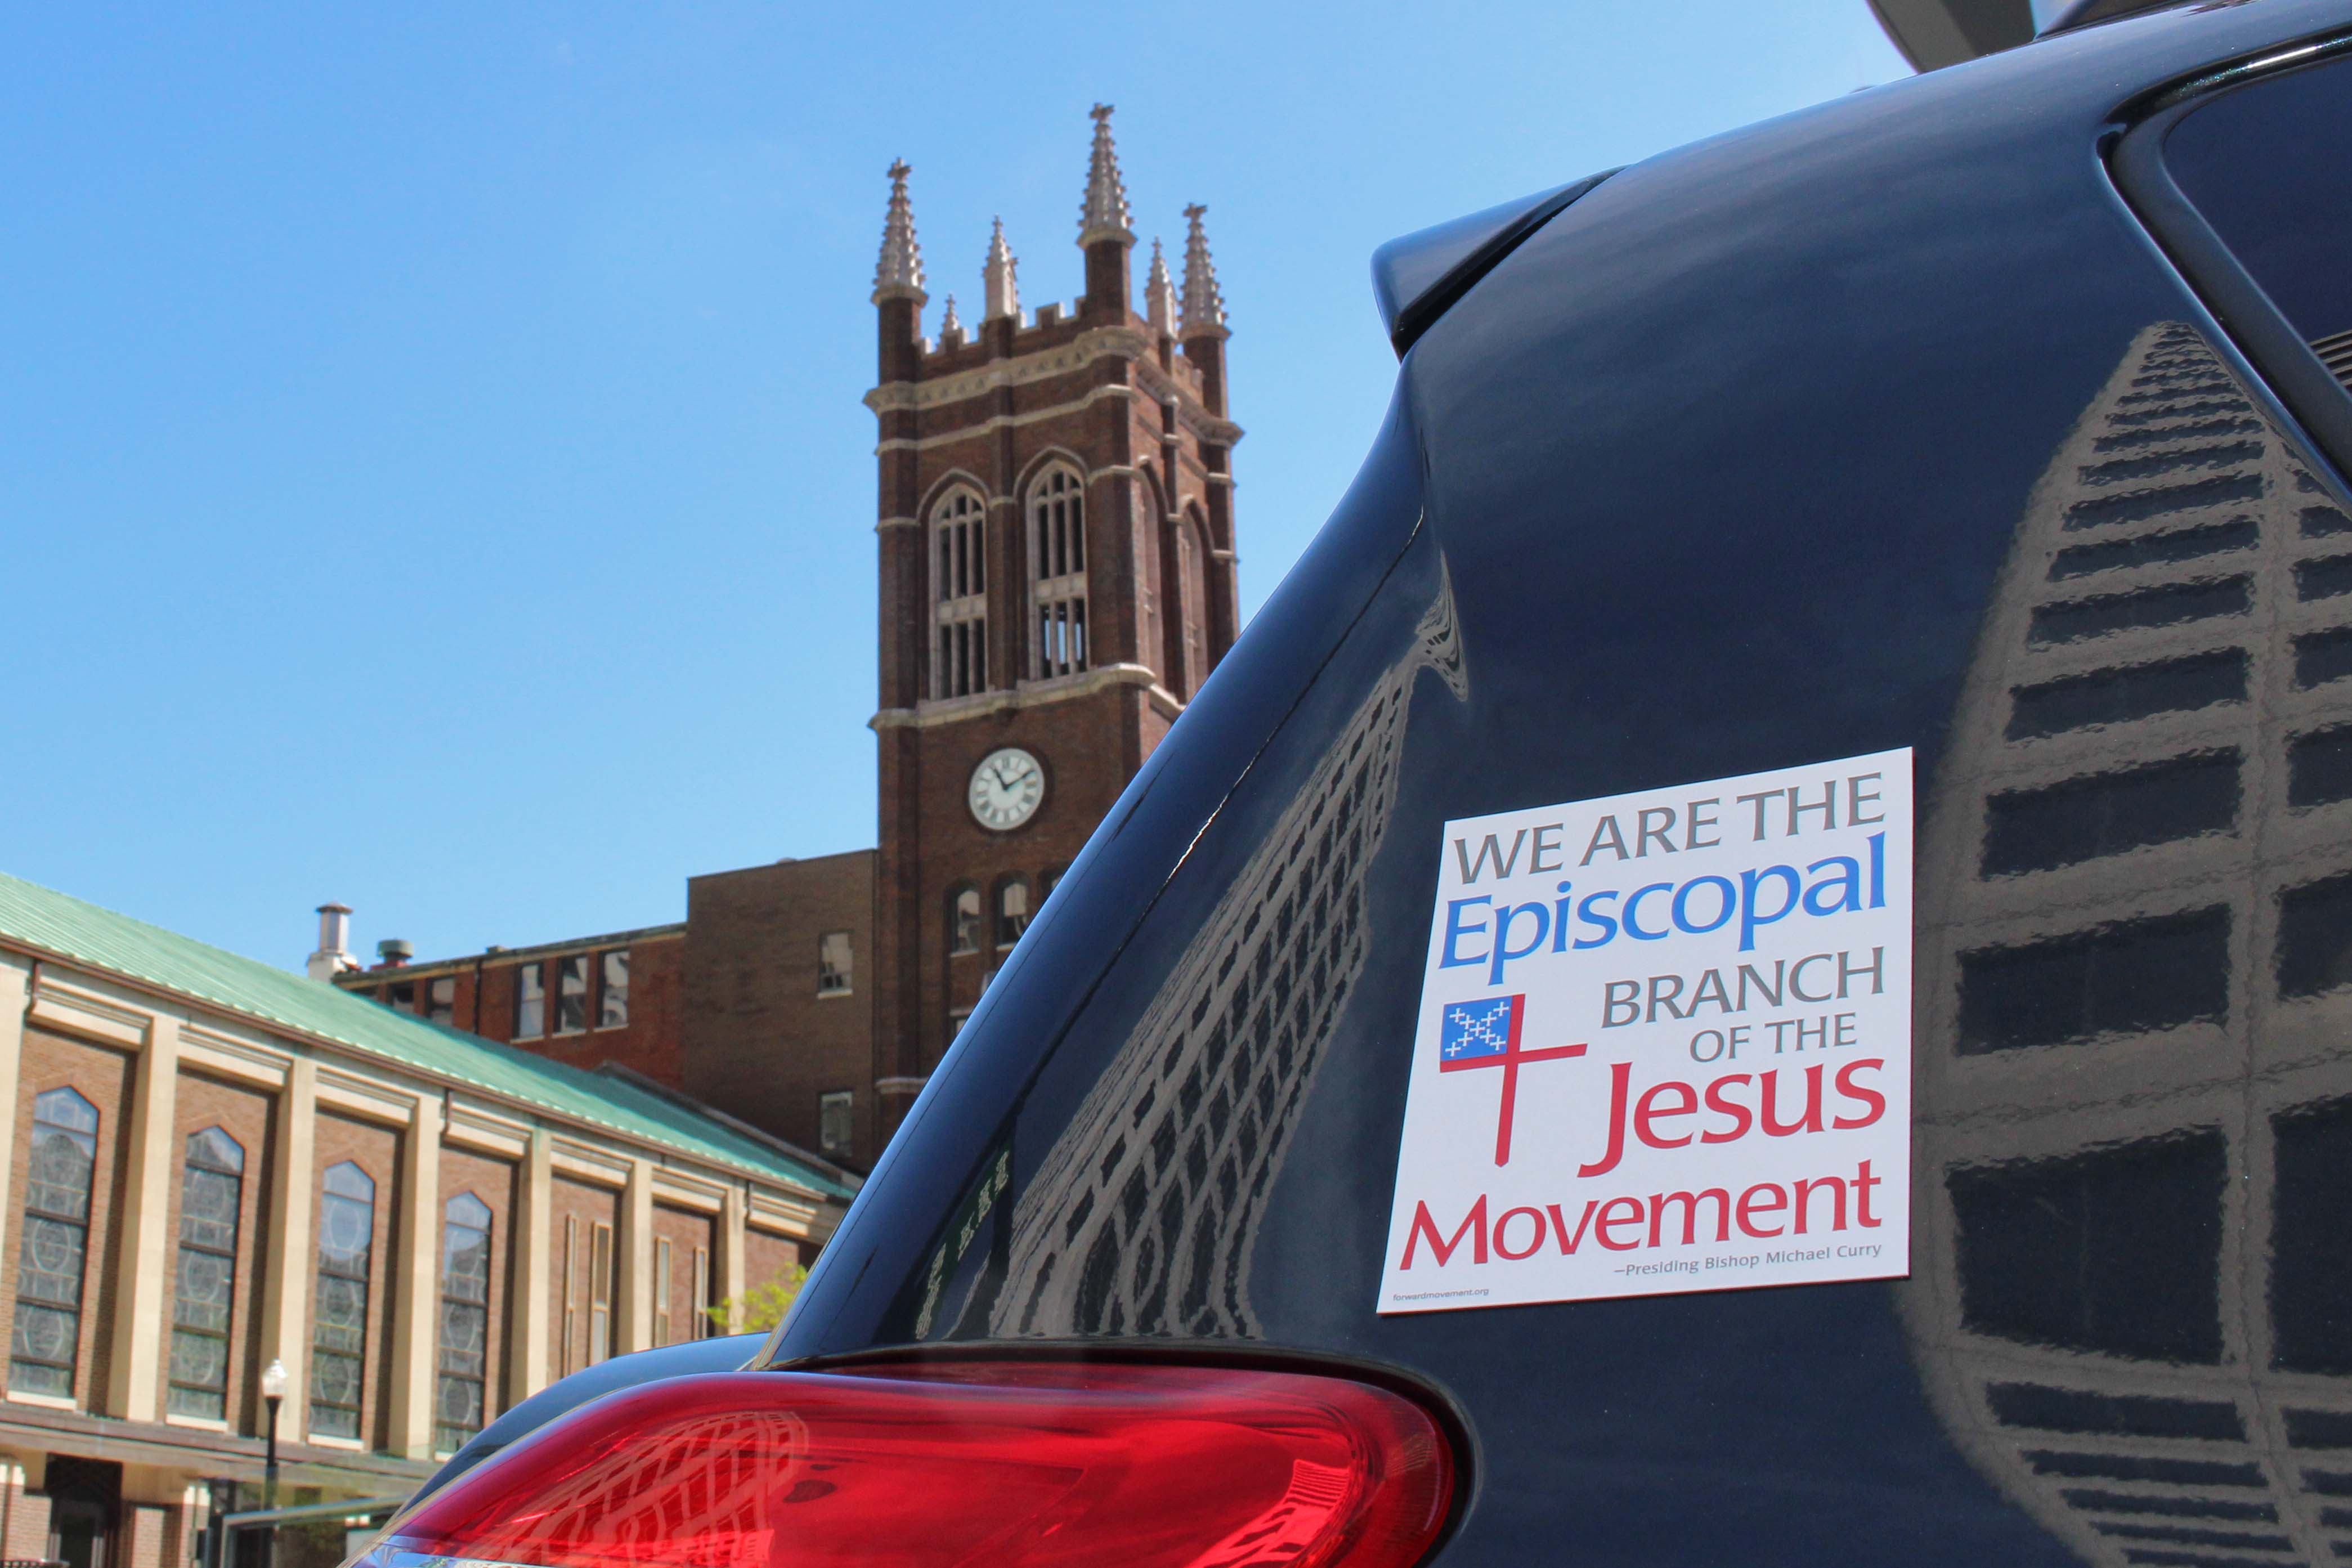 We Are The Episcopal Branch Of The Jesus Movement